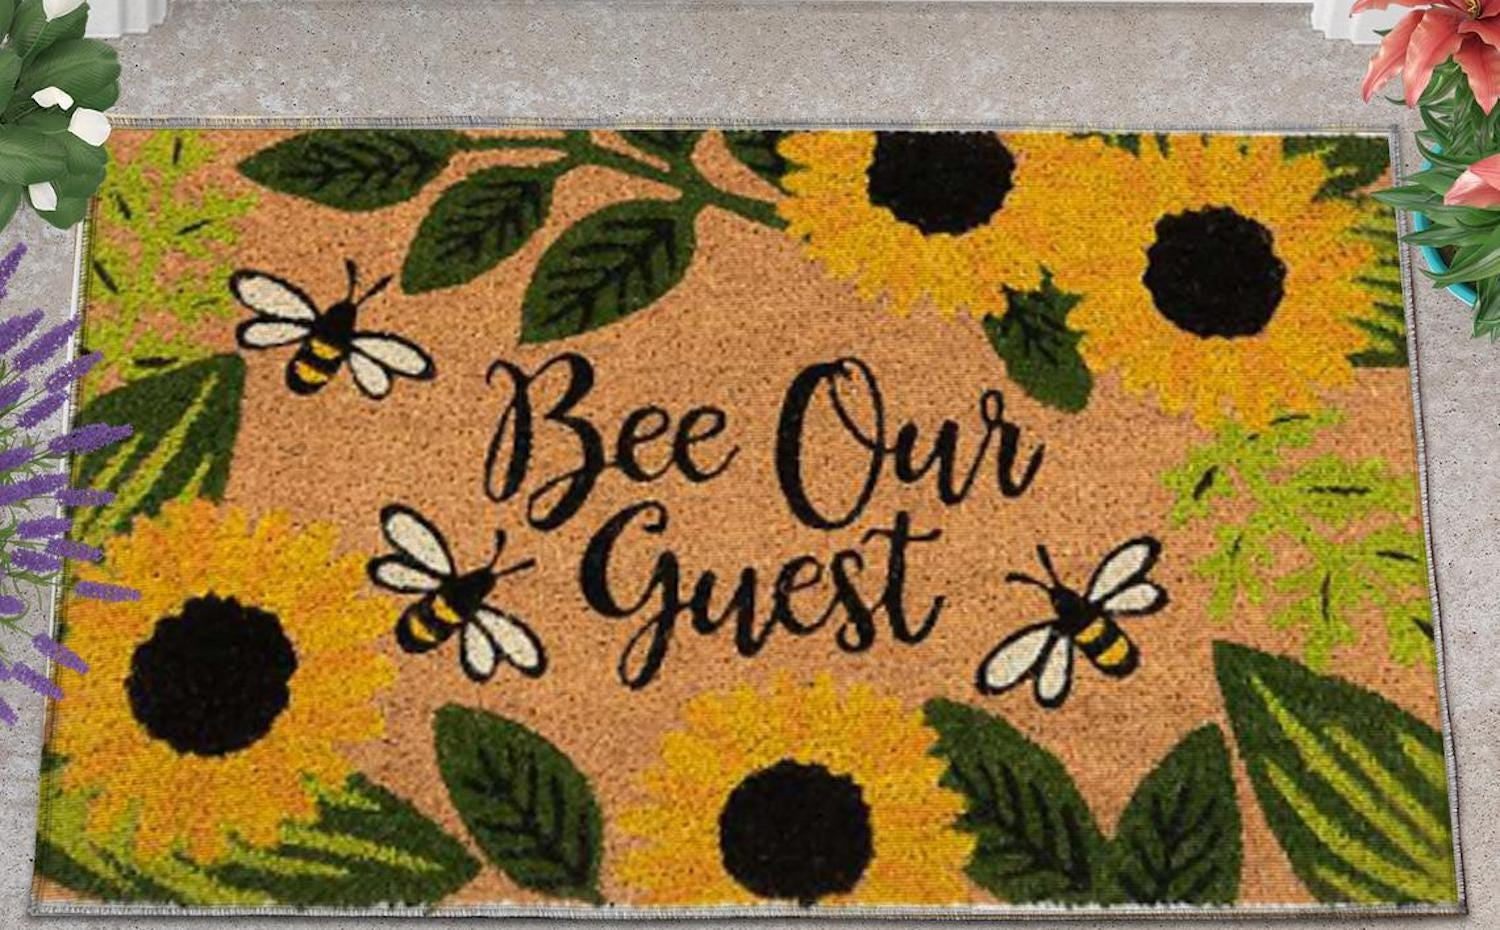 """A doormat with sunflower and bee designs surrounding """"bee our guest"""" in script"""